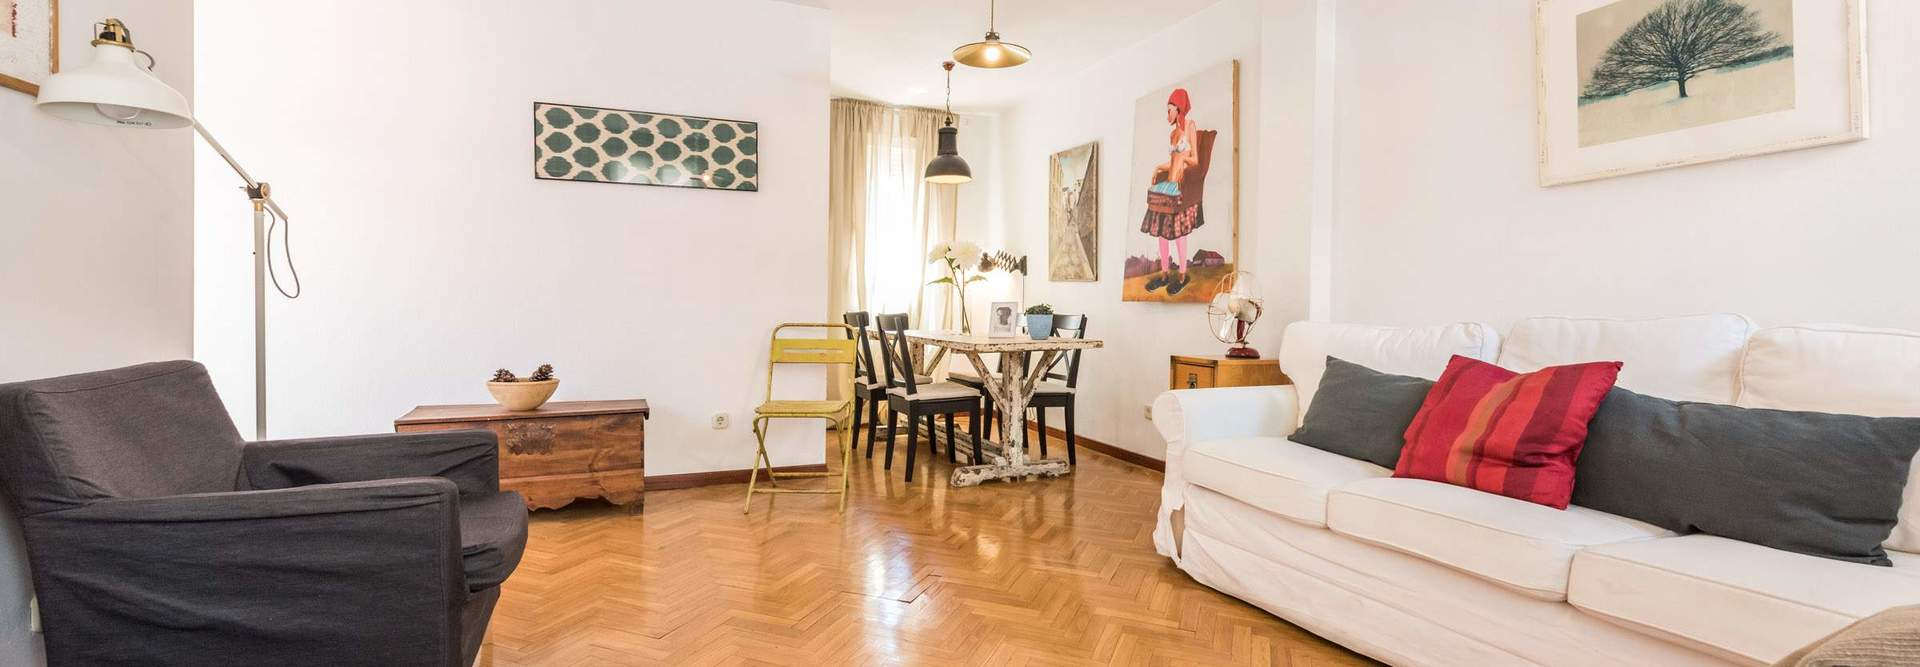 Home alquiler apartamento por d as madrid centro  17